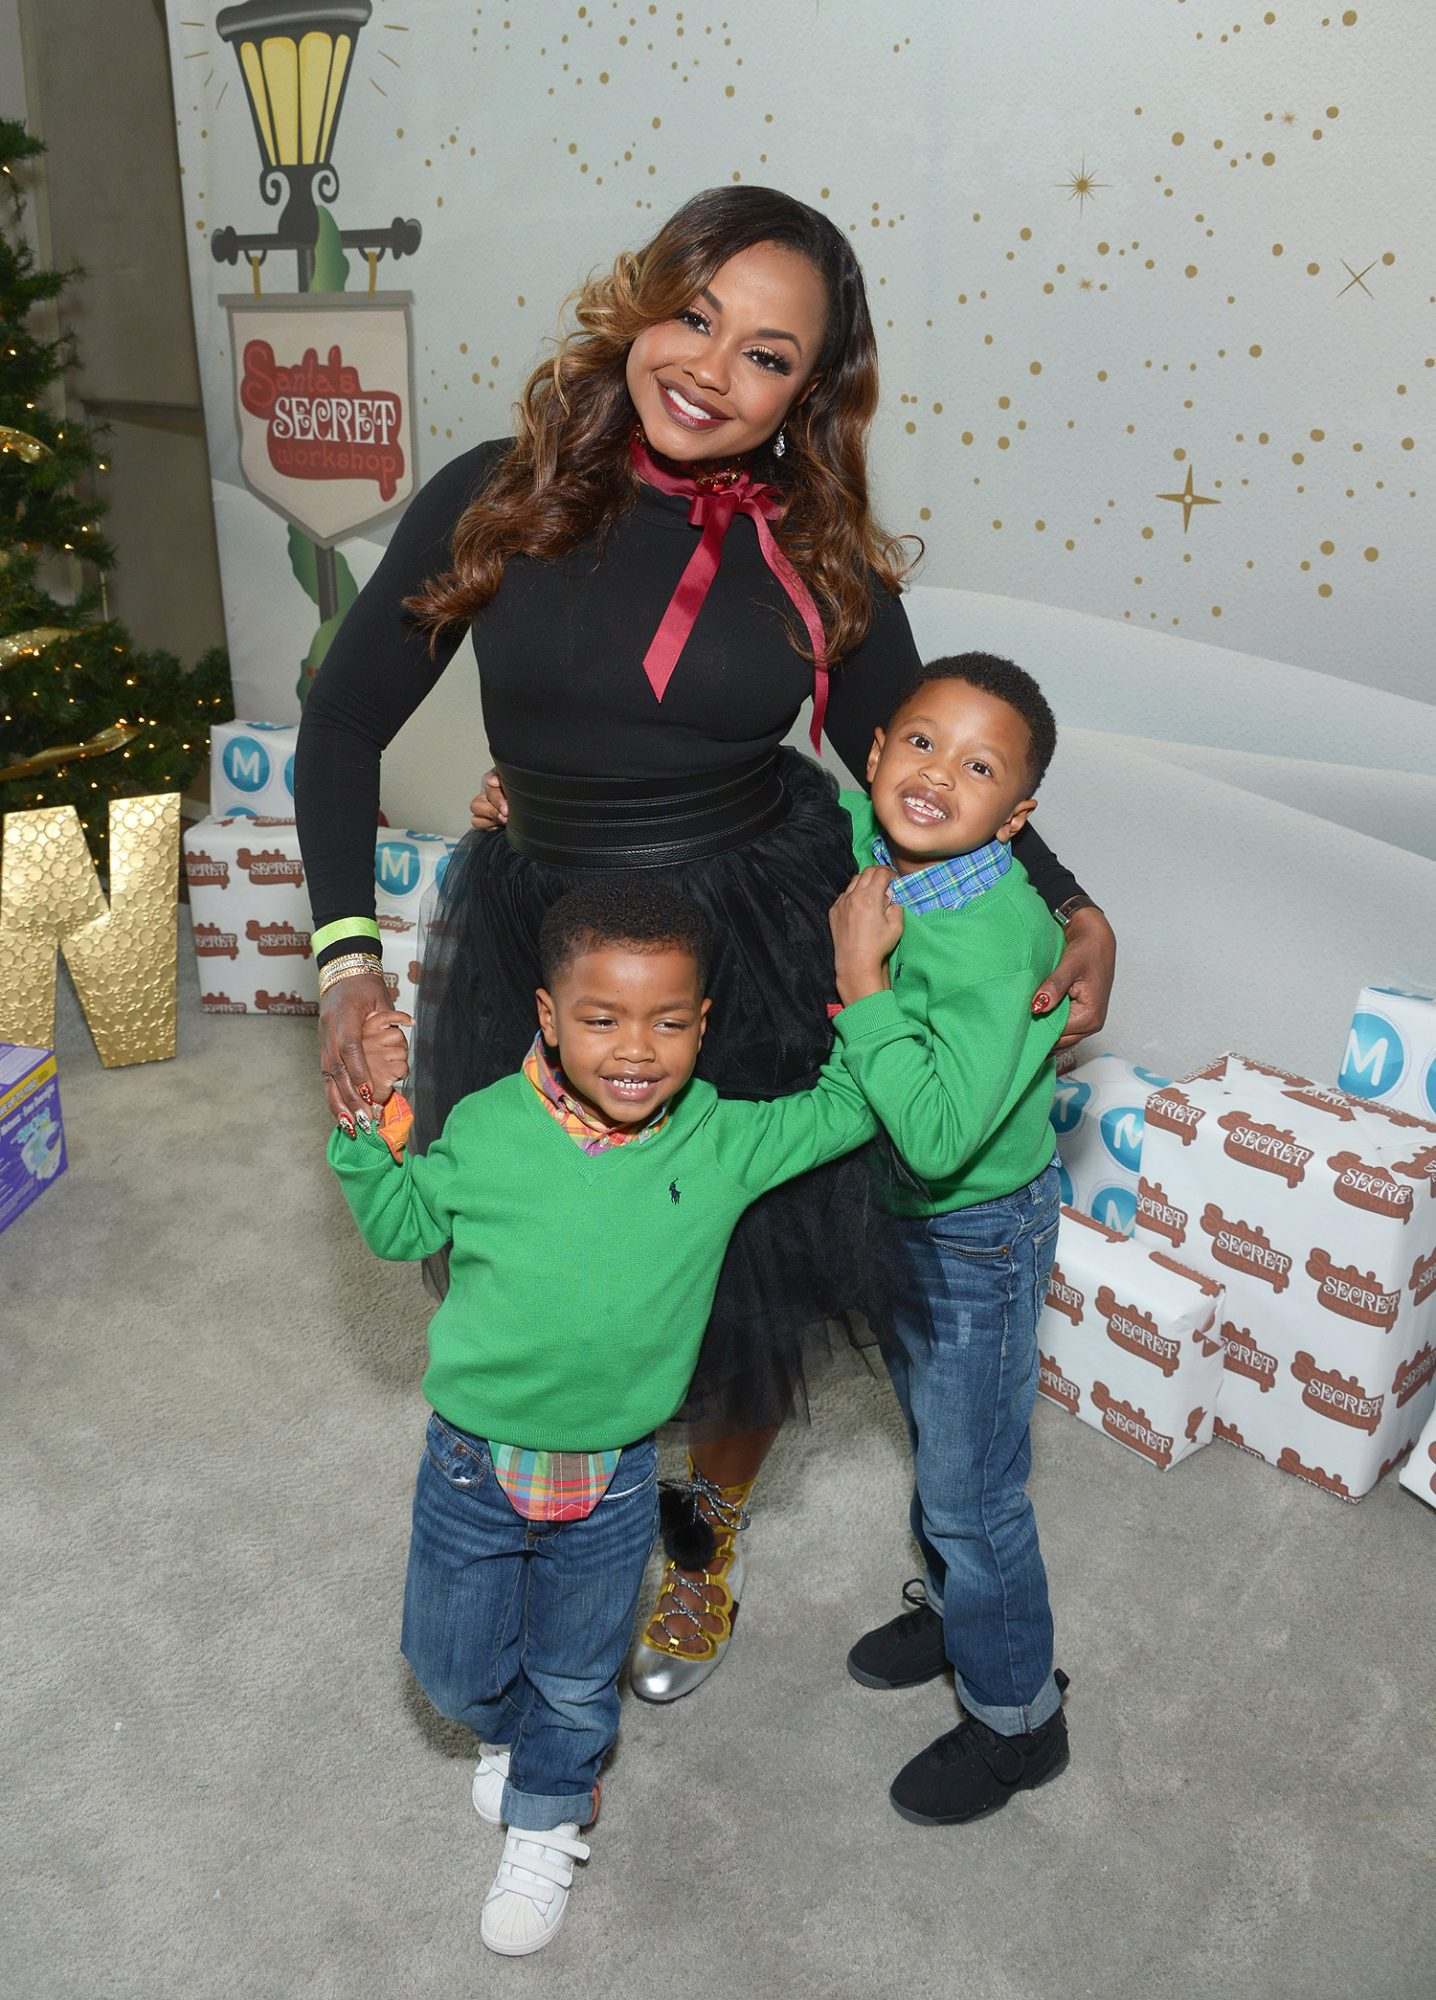 WEST HOLLYWOOD, CA - DECEMBER 03: TV personality Phaedra Parks and her sons Dylan Nida (L) and Ayden Nida attend 6th Annual Santa's Secret Workshop benefitting L.A. Family Housing at Andaz on December 3, 2016 in West Hollywood, California. (Photo by Matt Winkelmeyer/Getty Images for Santa's Secret Workshop 2016)